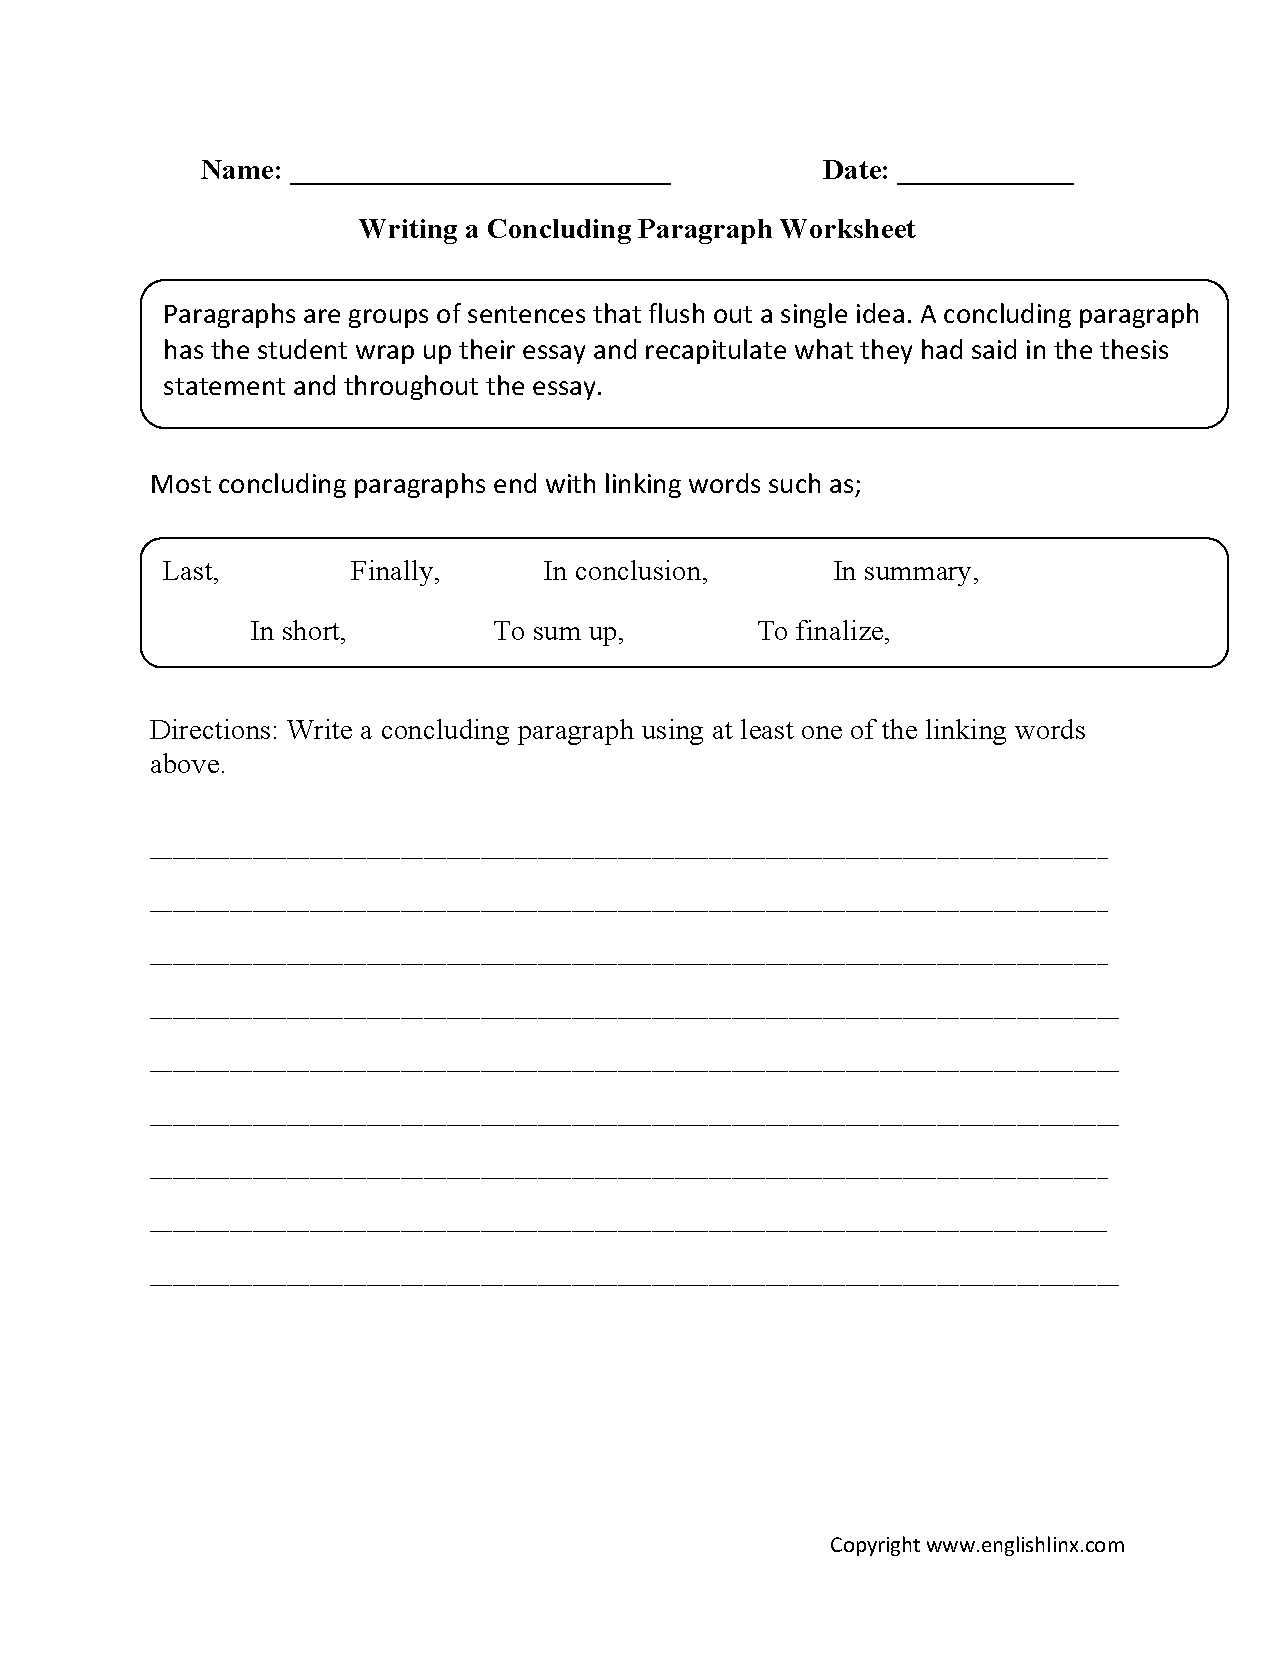 Get Your Students to Write with These Original High School Writing Prompts